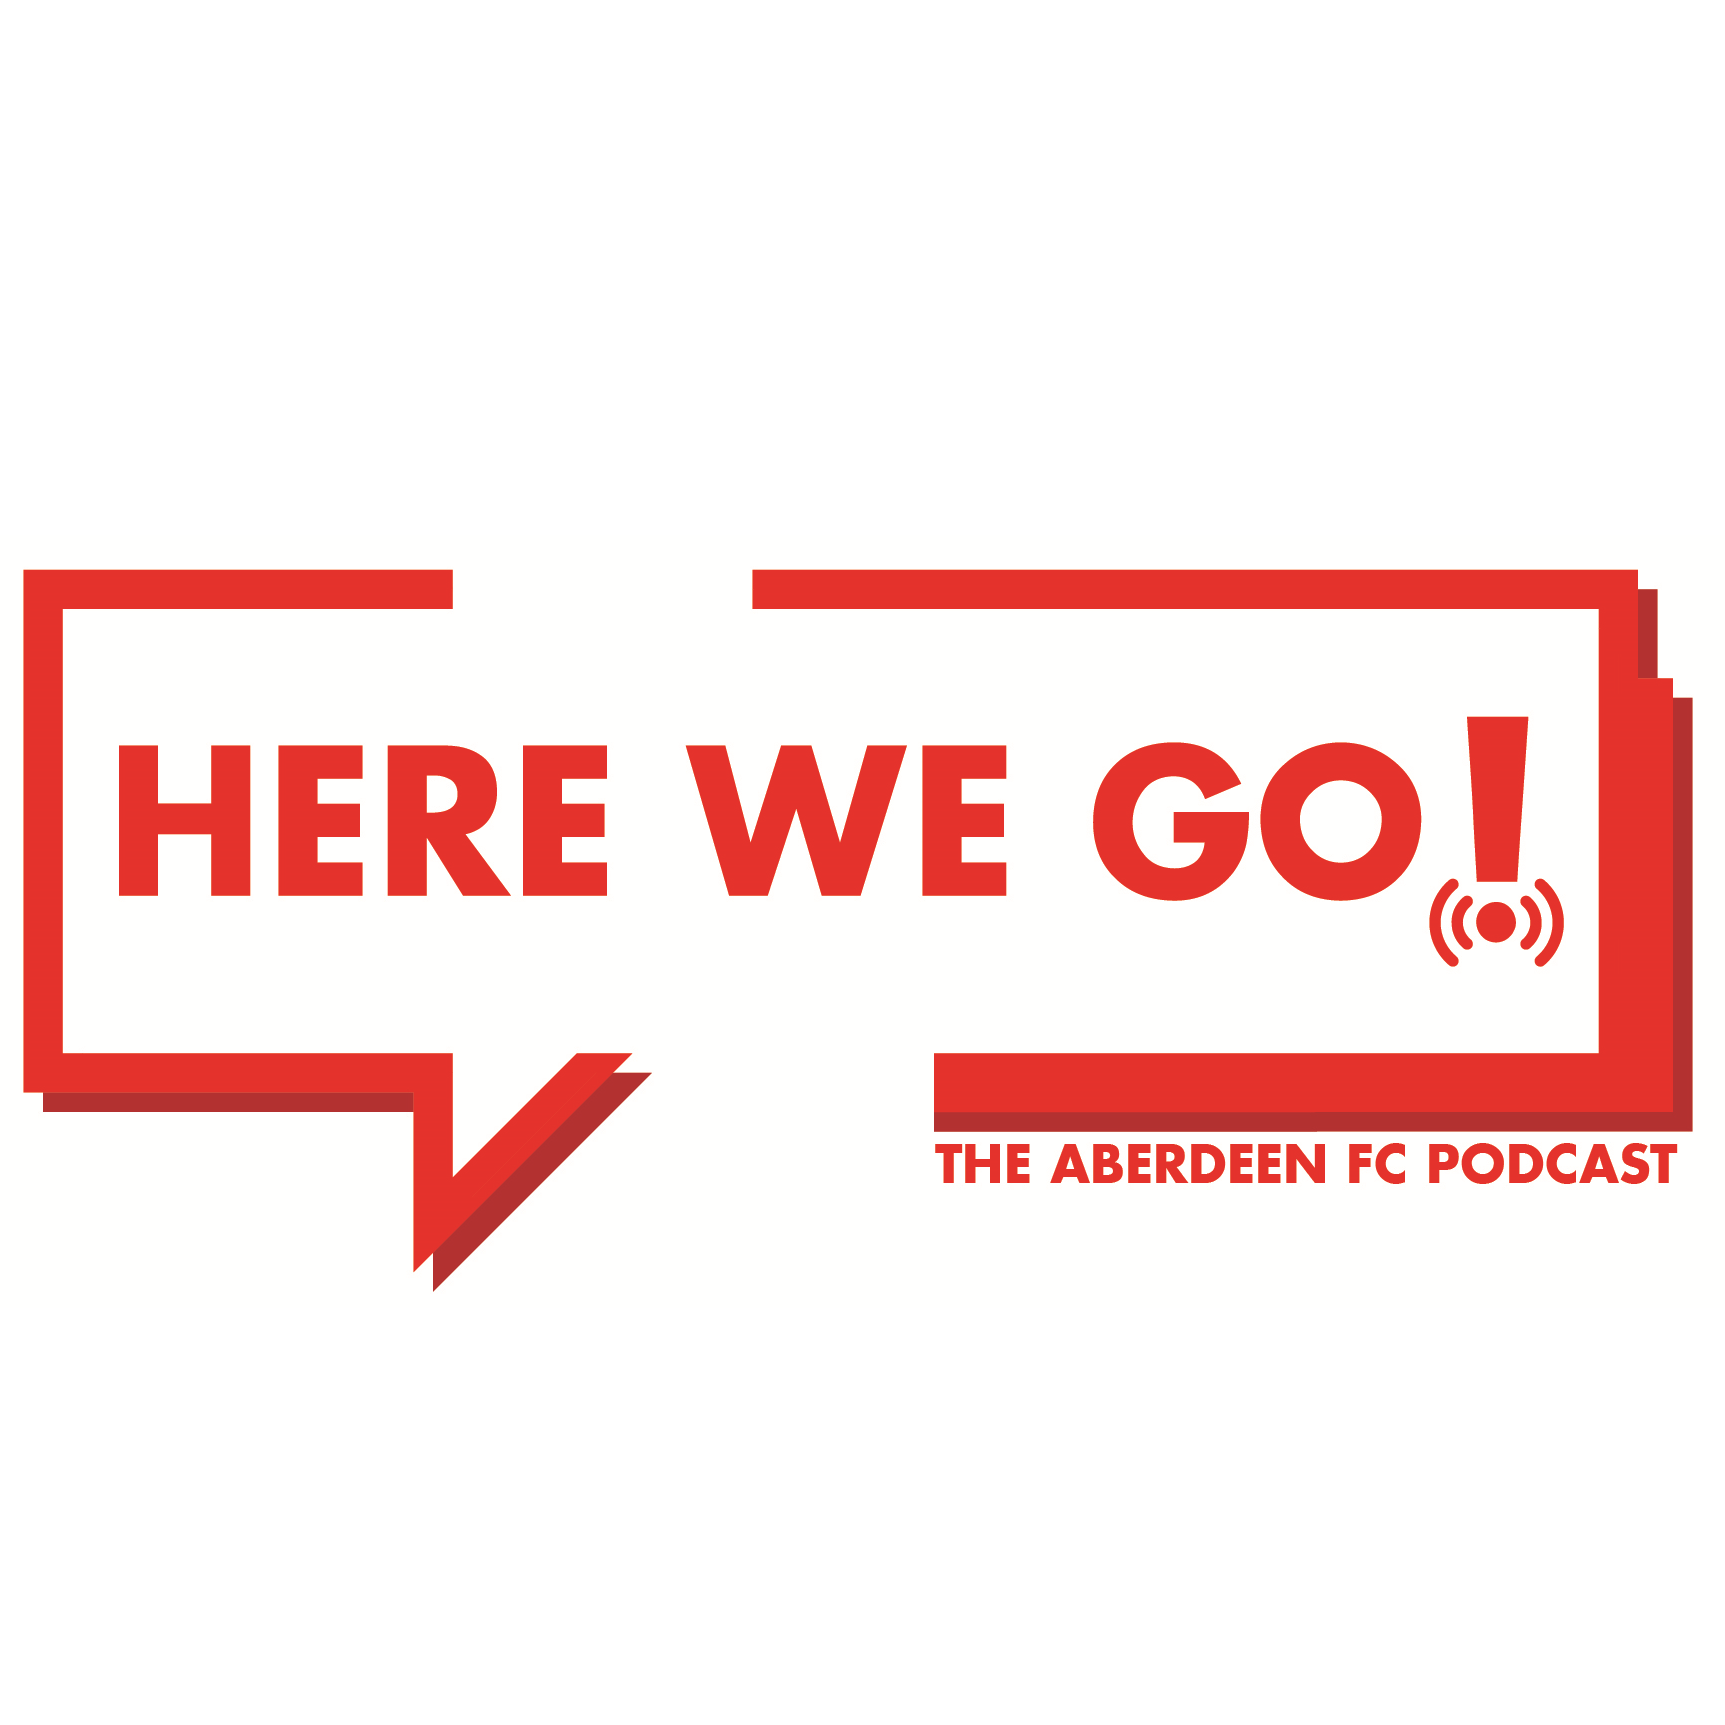 Here We Go! - The Aberdeen FC Podcast